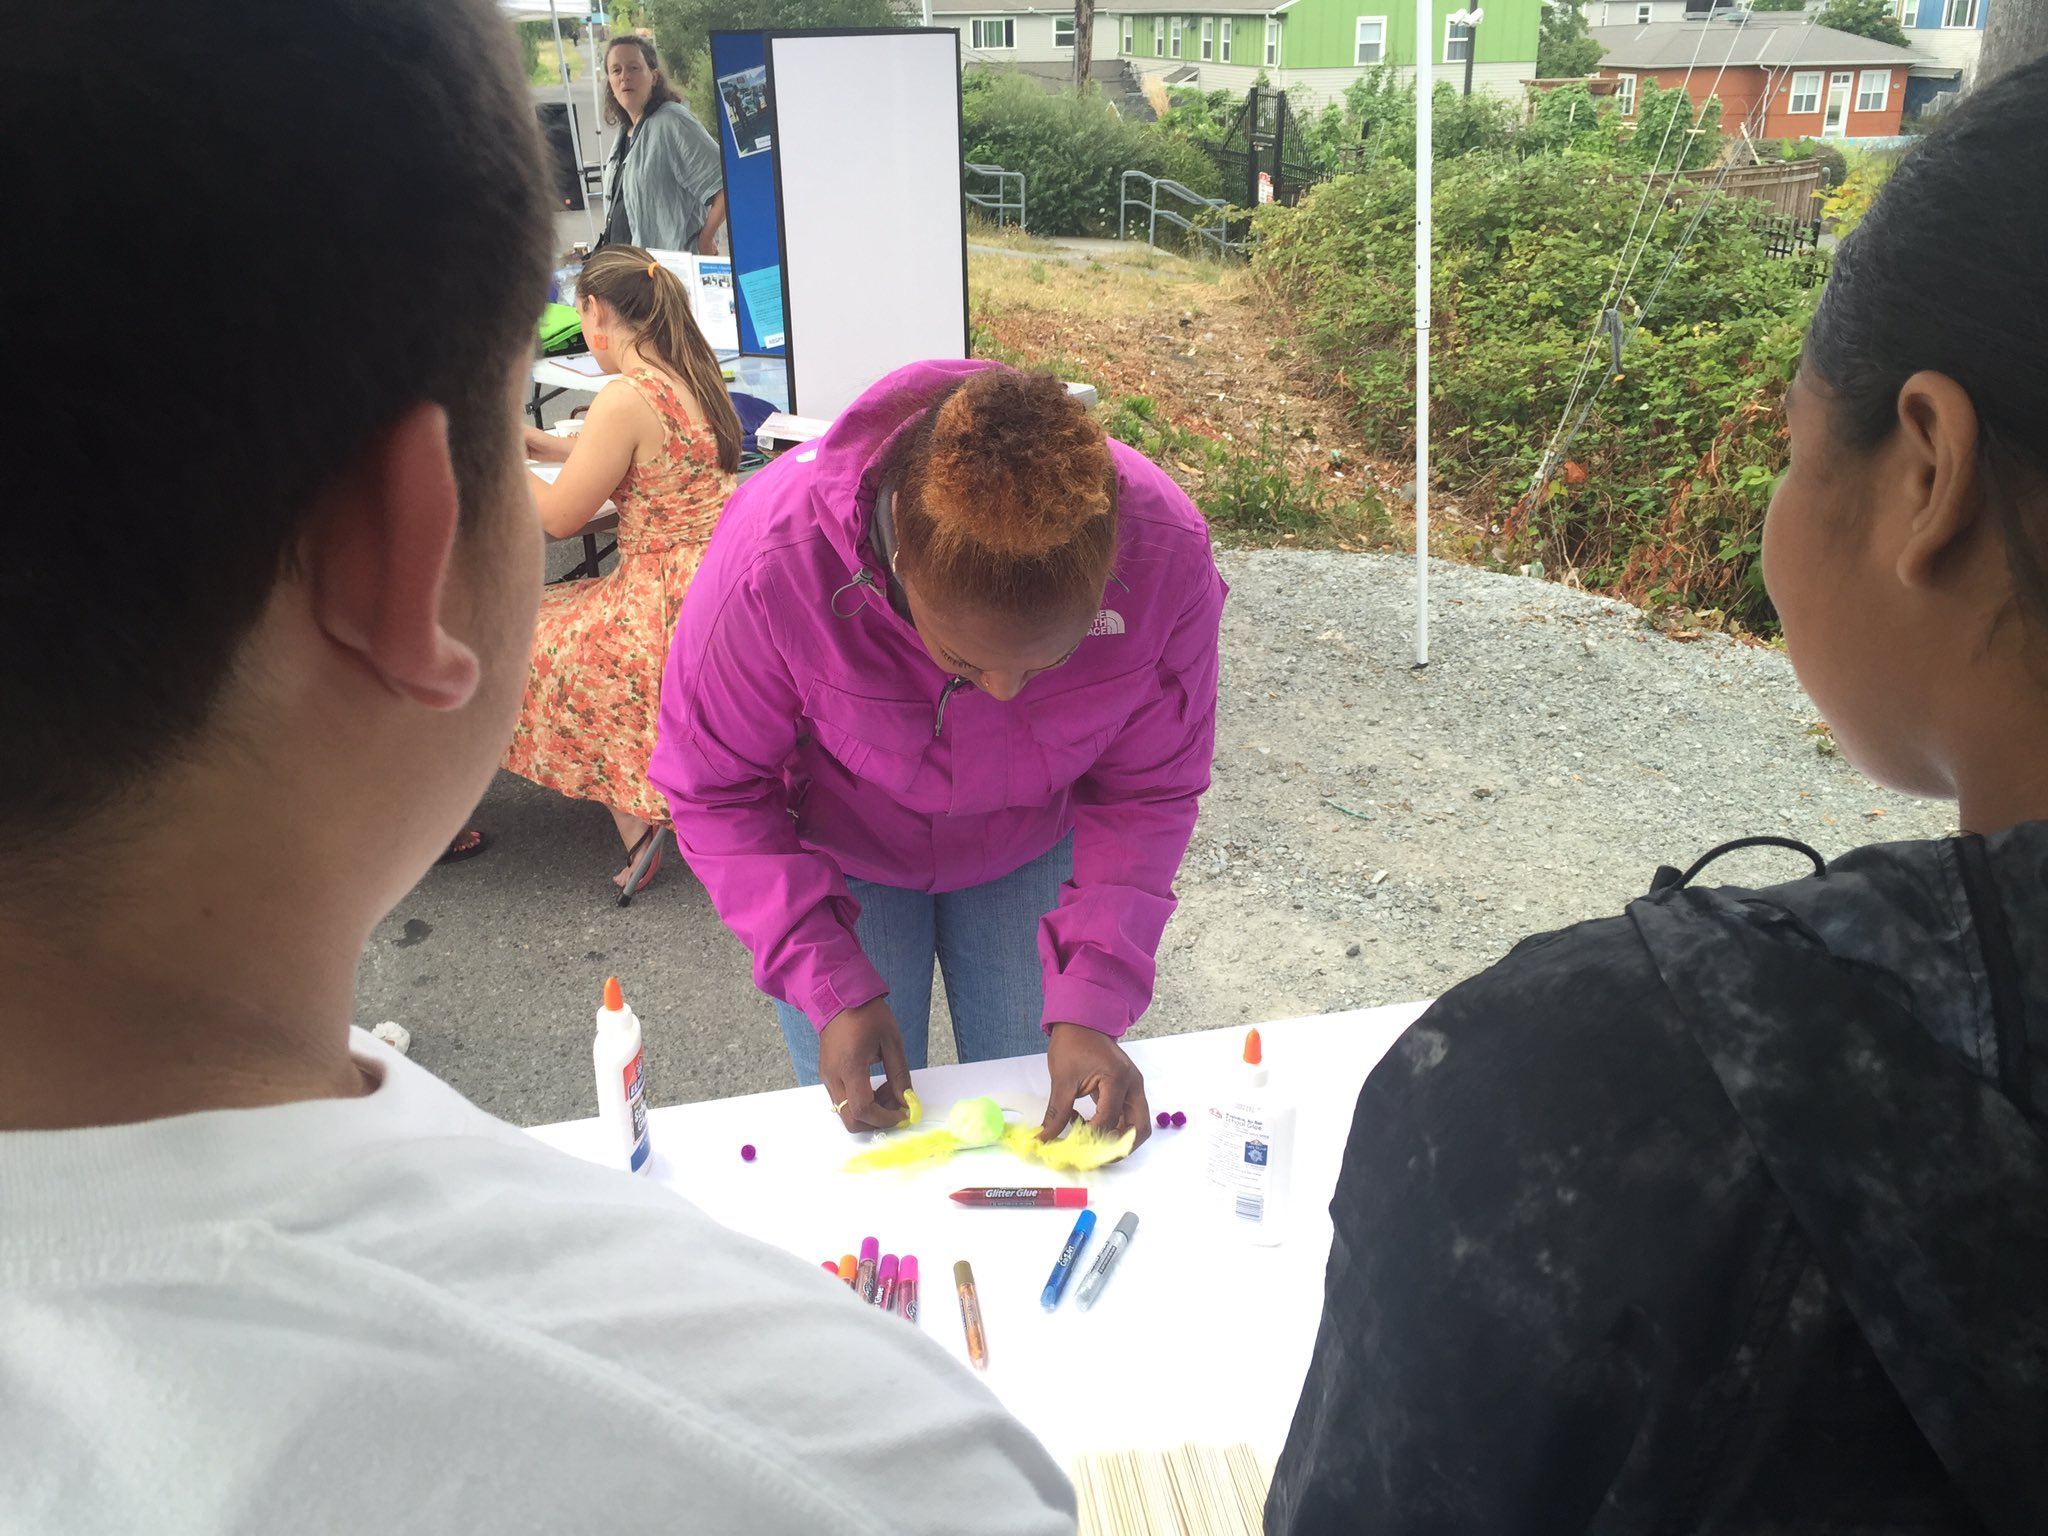 Safeway's #Seattlenationalnightout making mask at the Rbac booth https://t.co/QJBCW6yabY